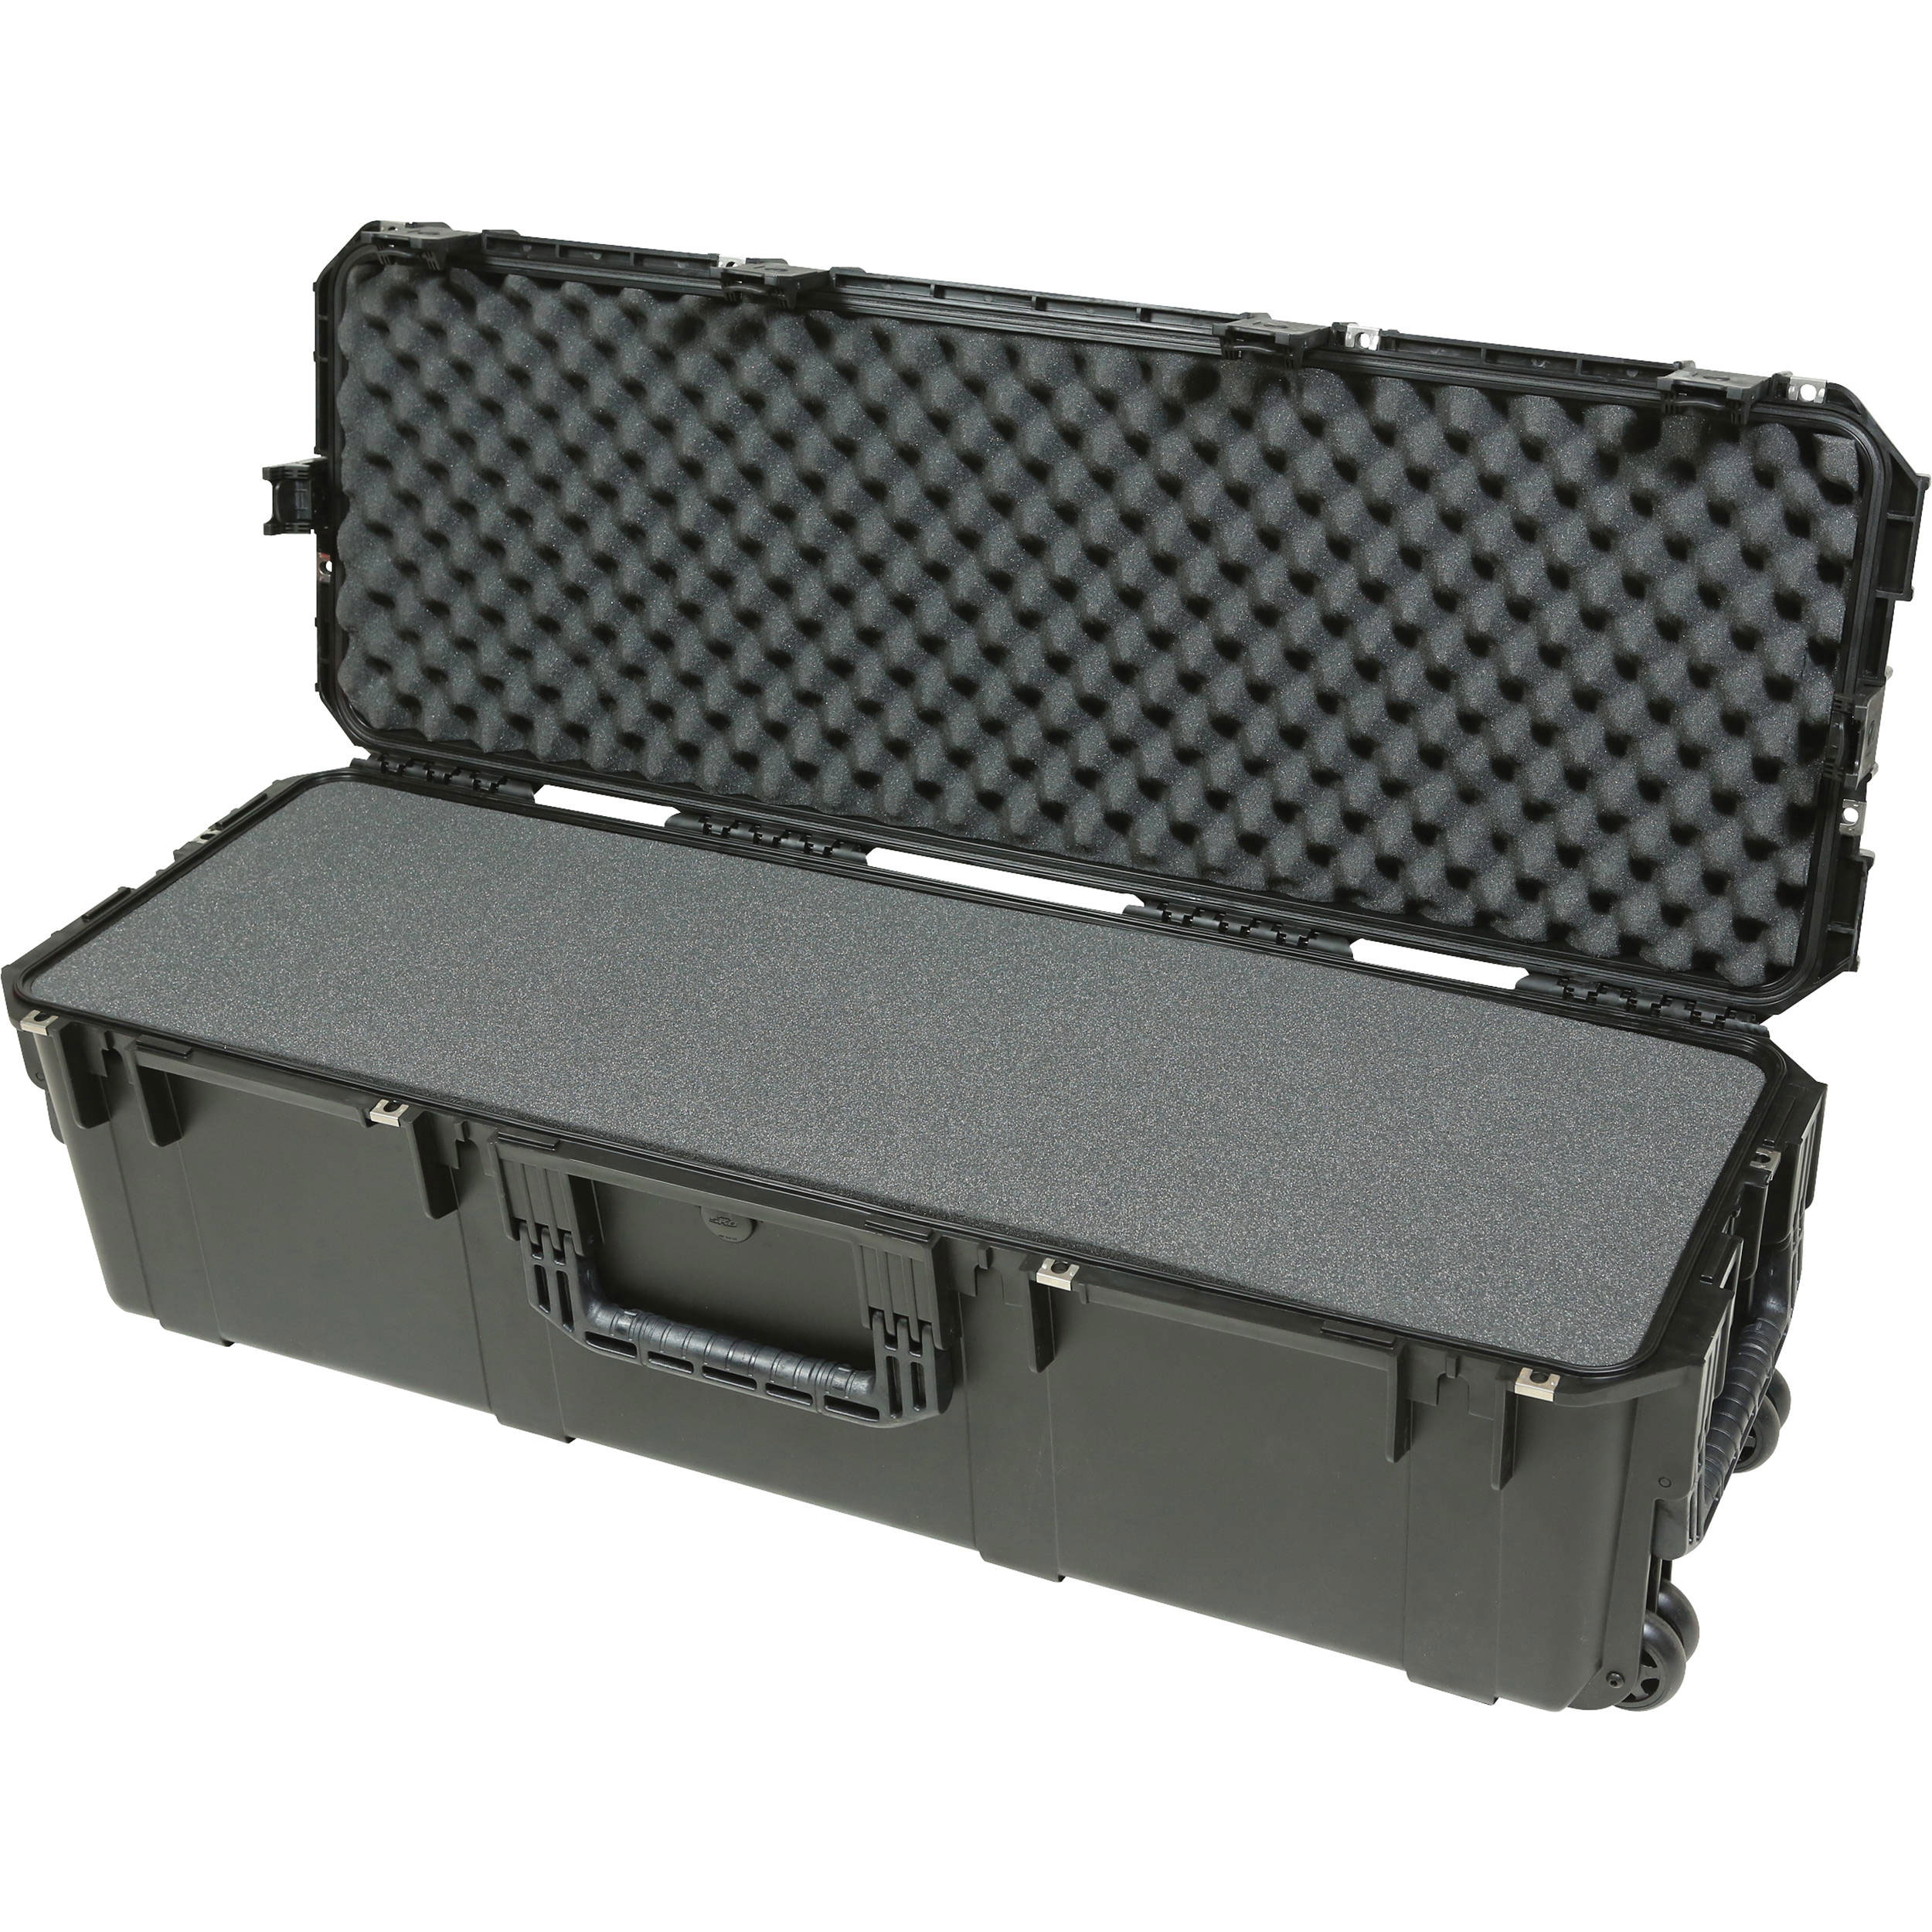 "SKB 42"" x 13"" x 12"" iSeries Injection Molded Waterproof Utility Case with Layered Foam"